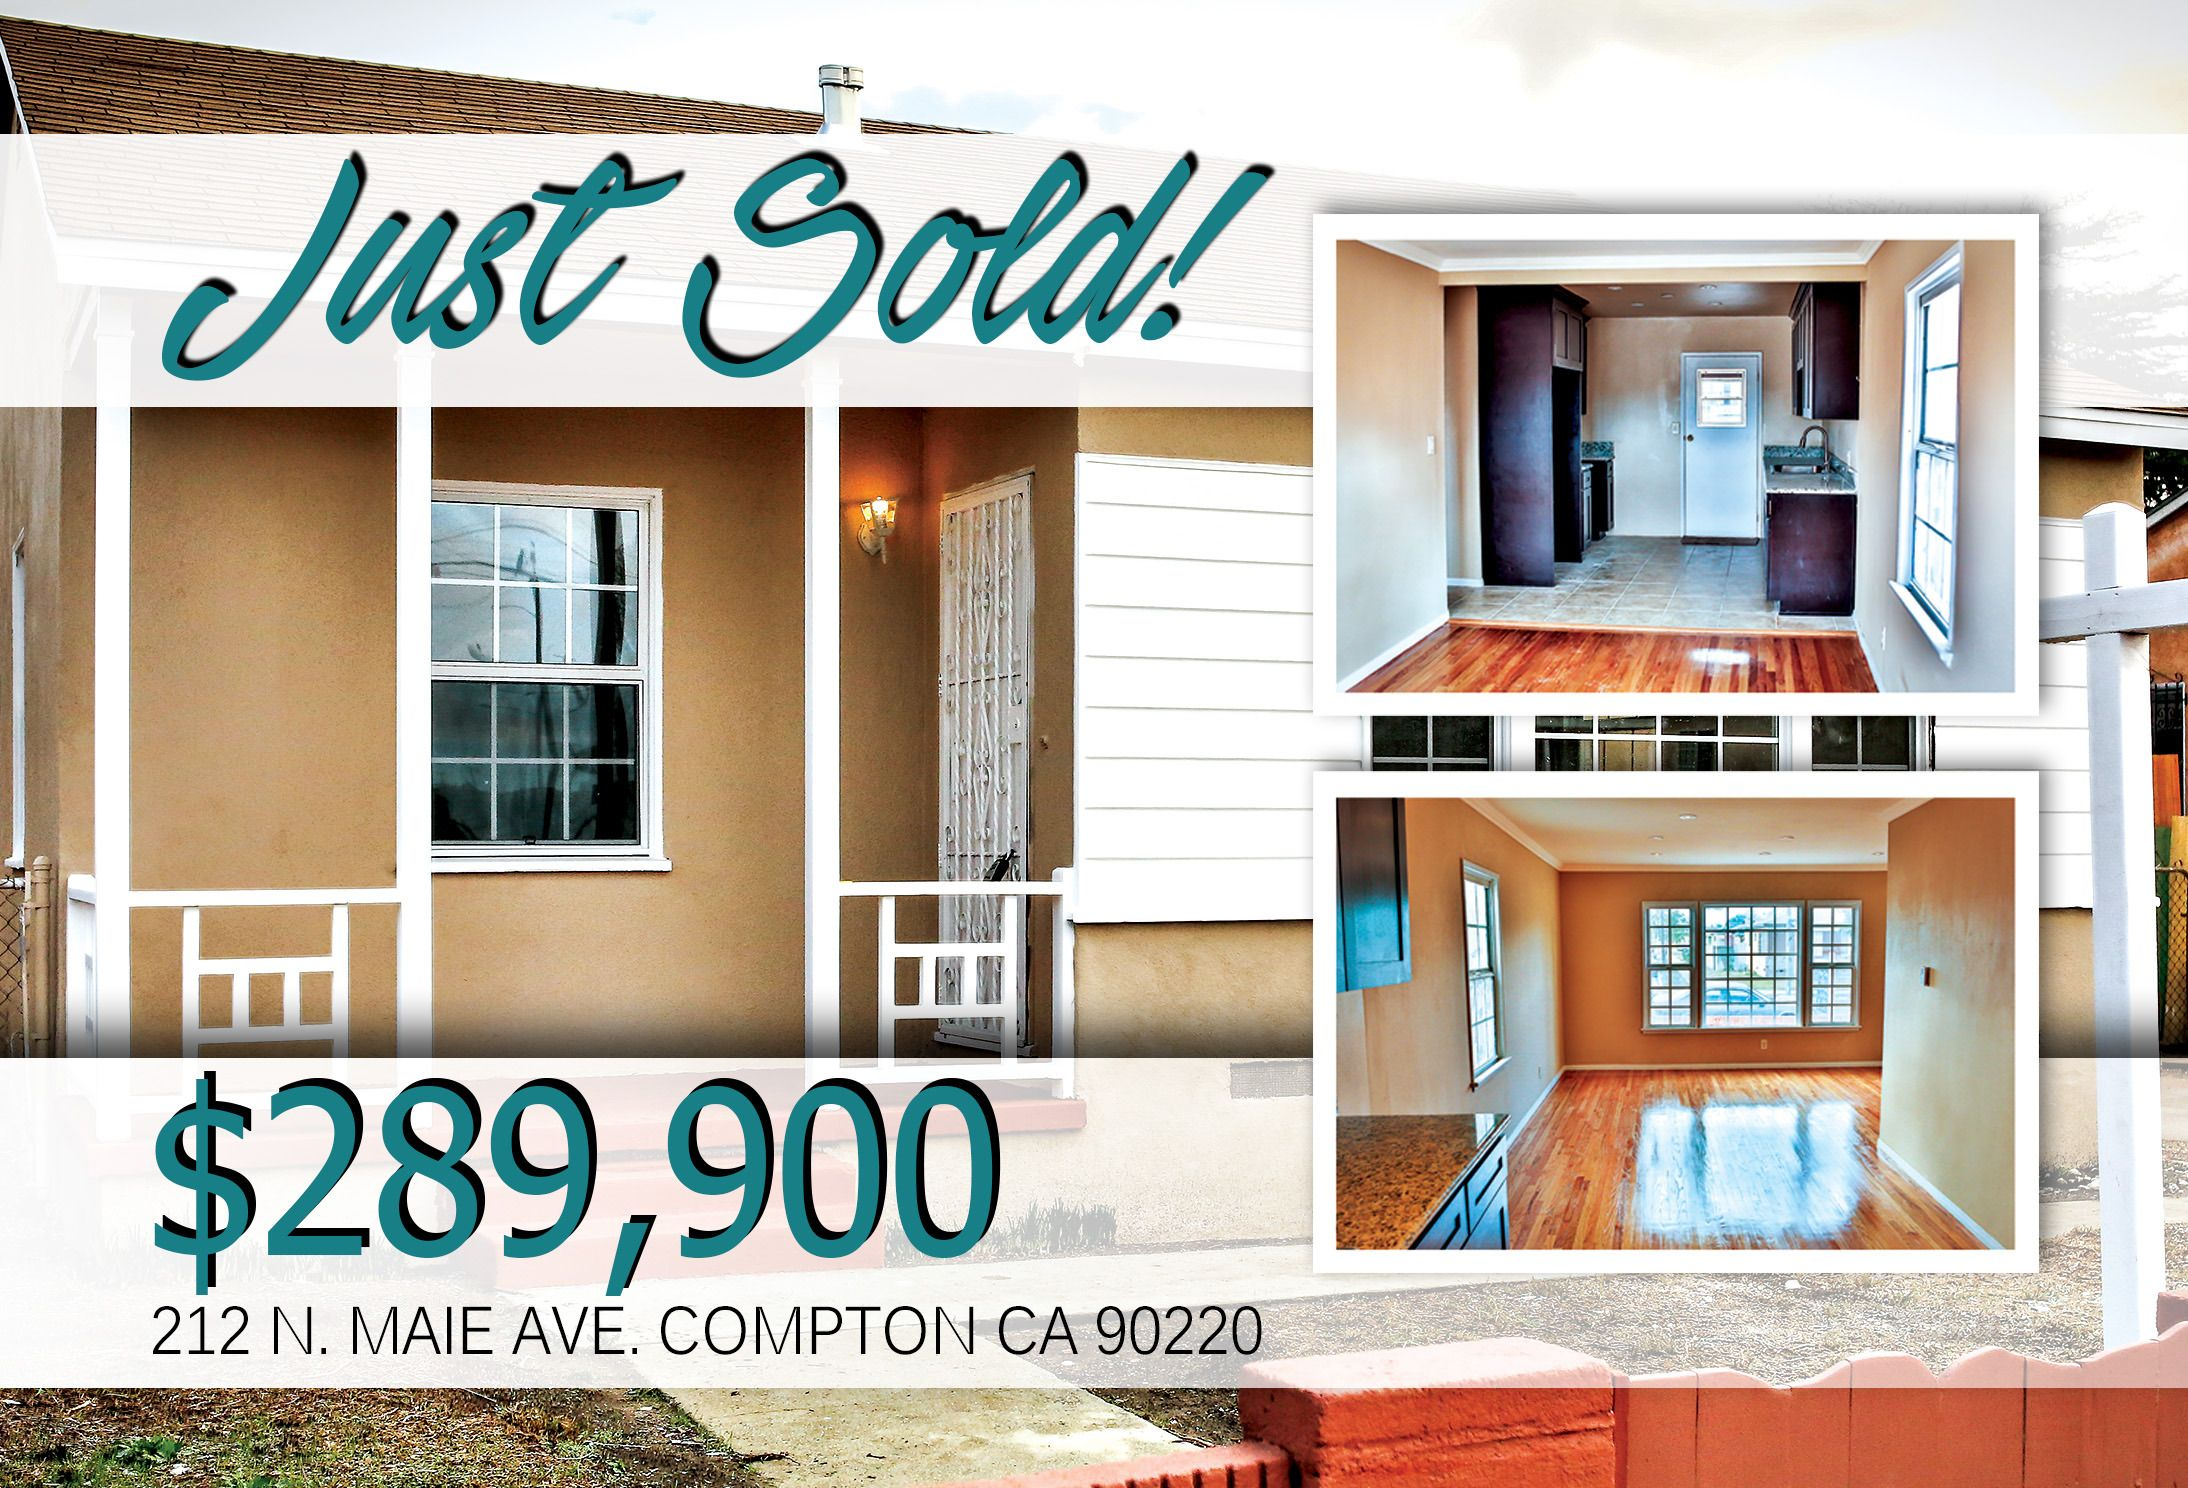 Another Just Sold!  JM Realty Group just sold another one in Compton in less than 90 days! When we first debuted this property we knew it was going to go